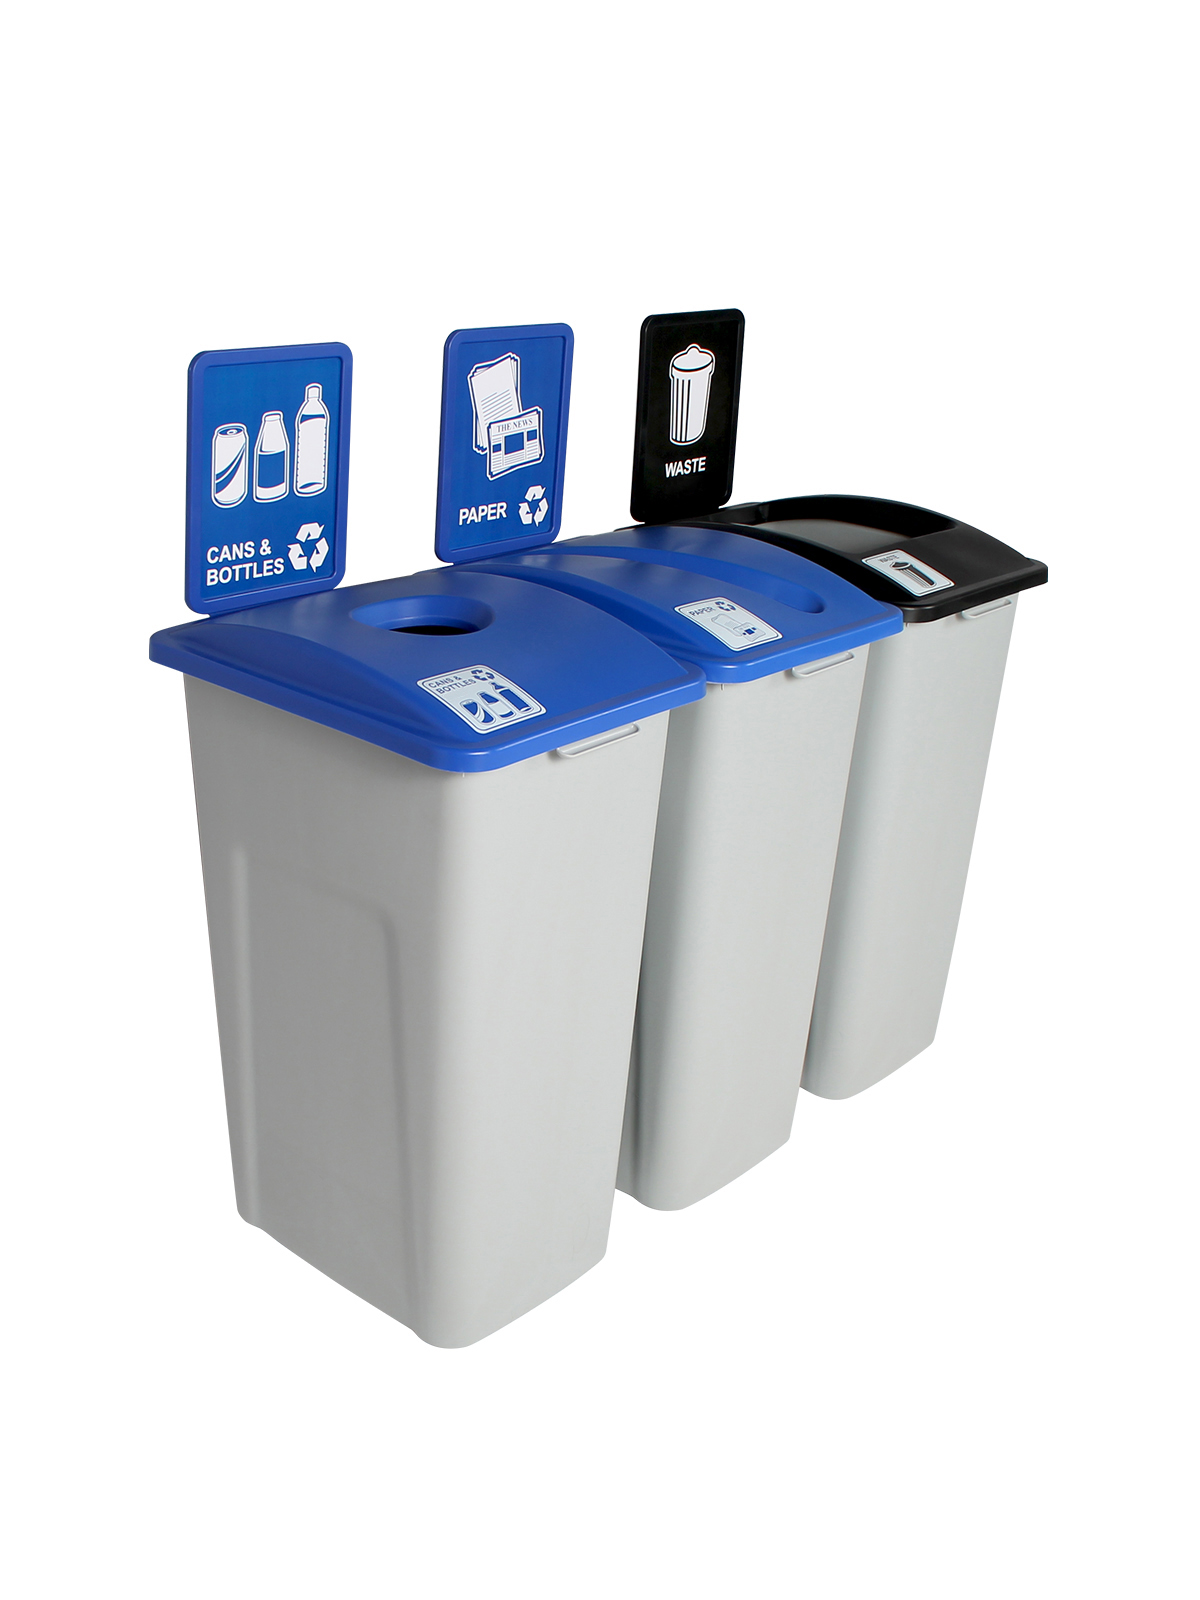 WASTE WATCHER XL - Triple - Cans & Bottles-Paper-Waste - Circle-Slot-Full - Grey-Blue-Blue-Black